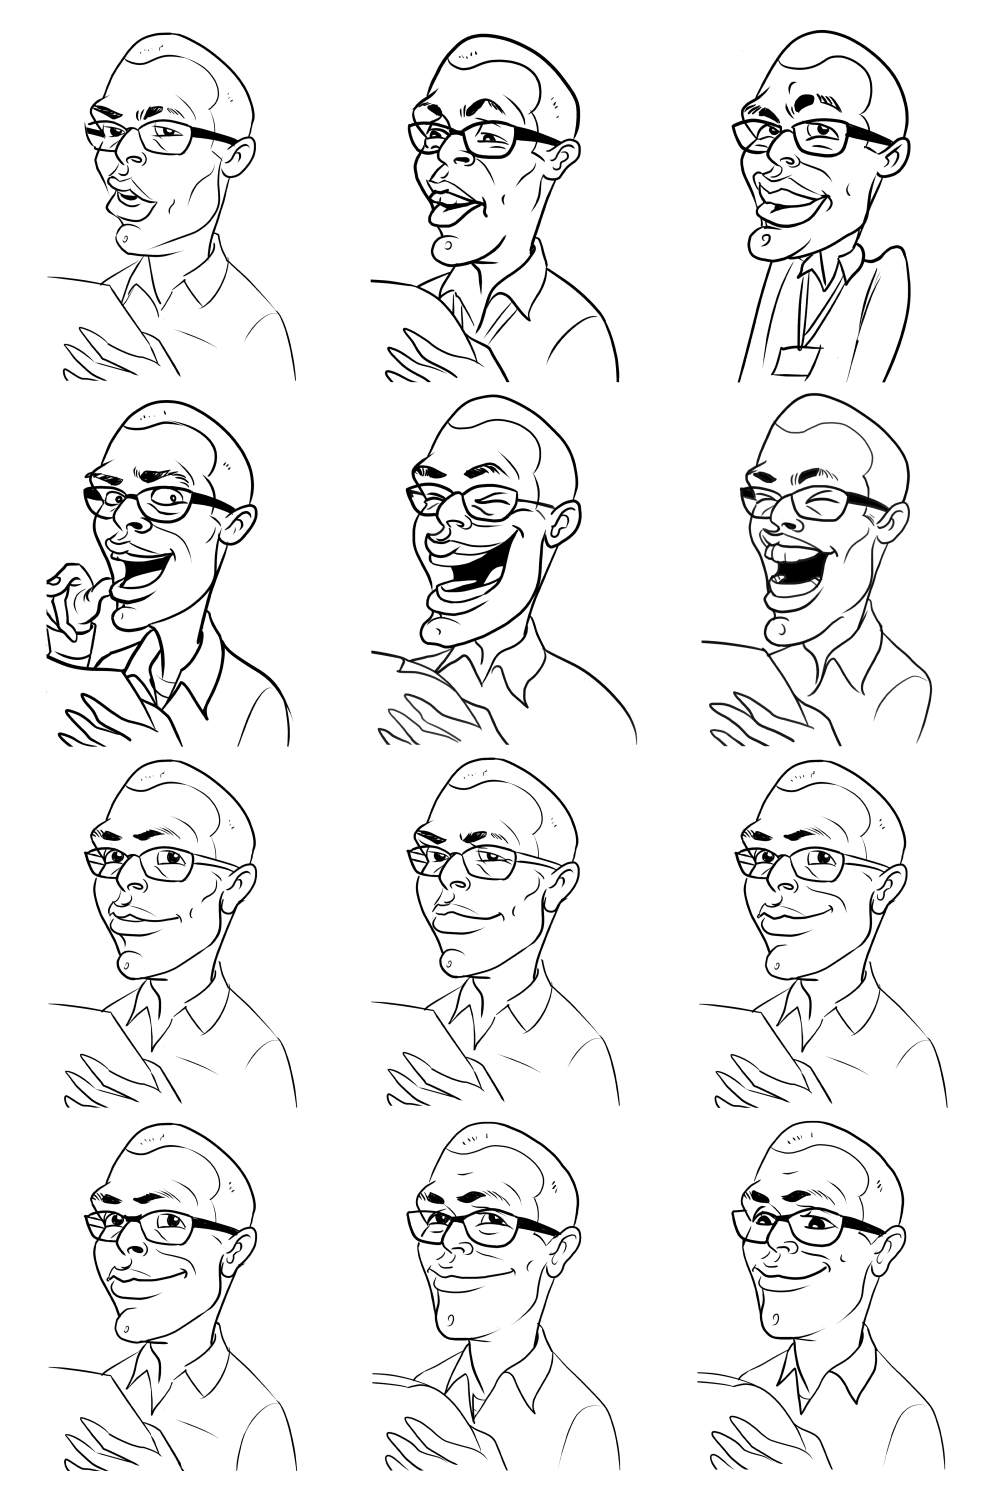 Caricature Sheet 1000w.jpg